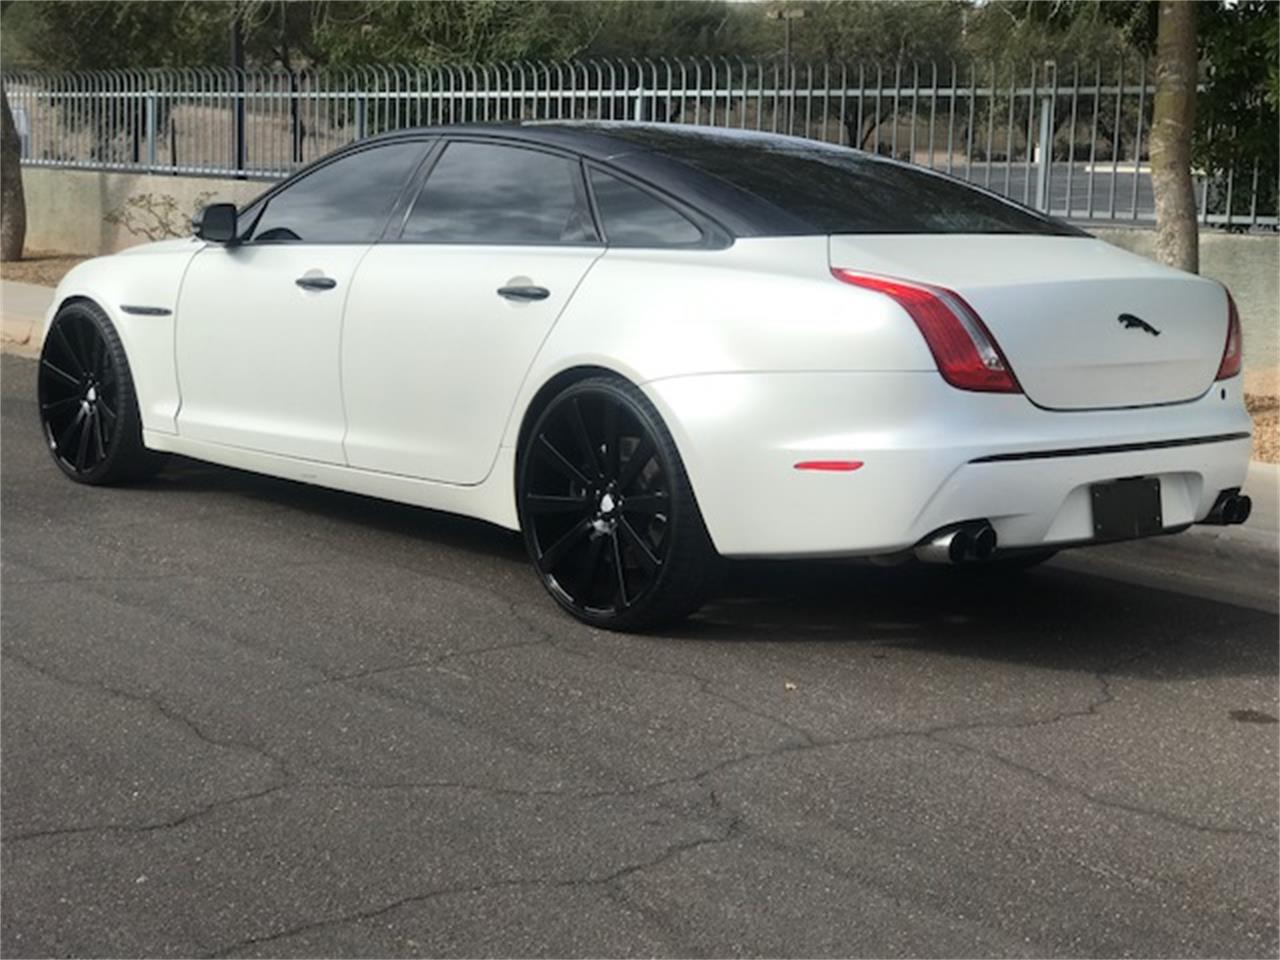 Large Picture of '11 Jaguar XJL Supercharged Auction Vehicle Offered by Russo and Steele - MOE8